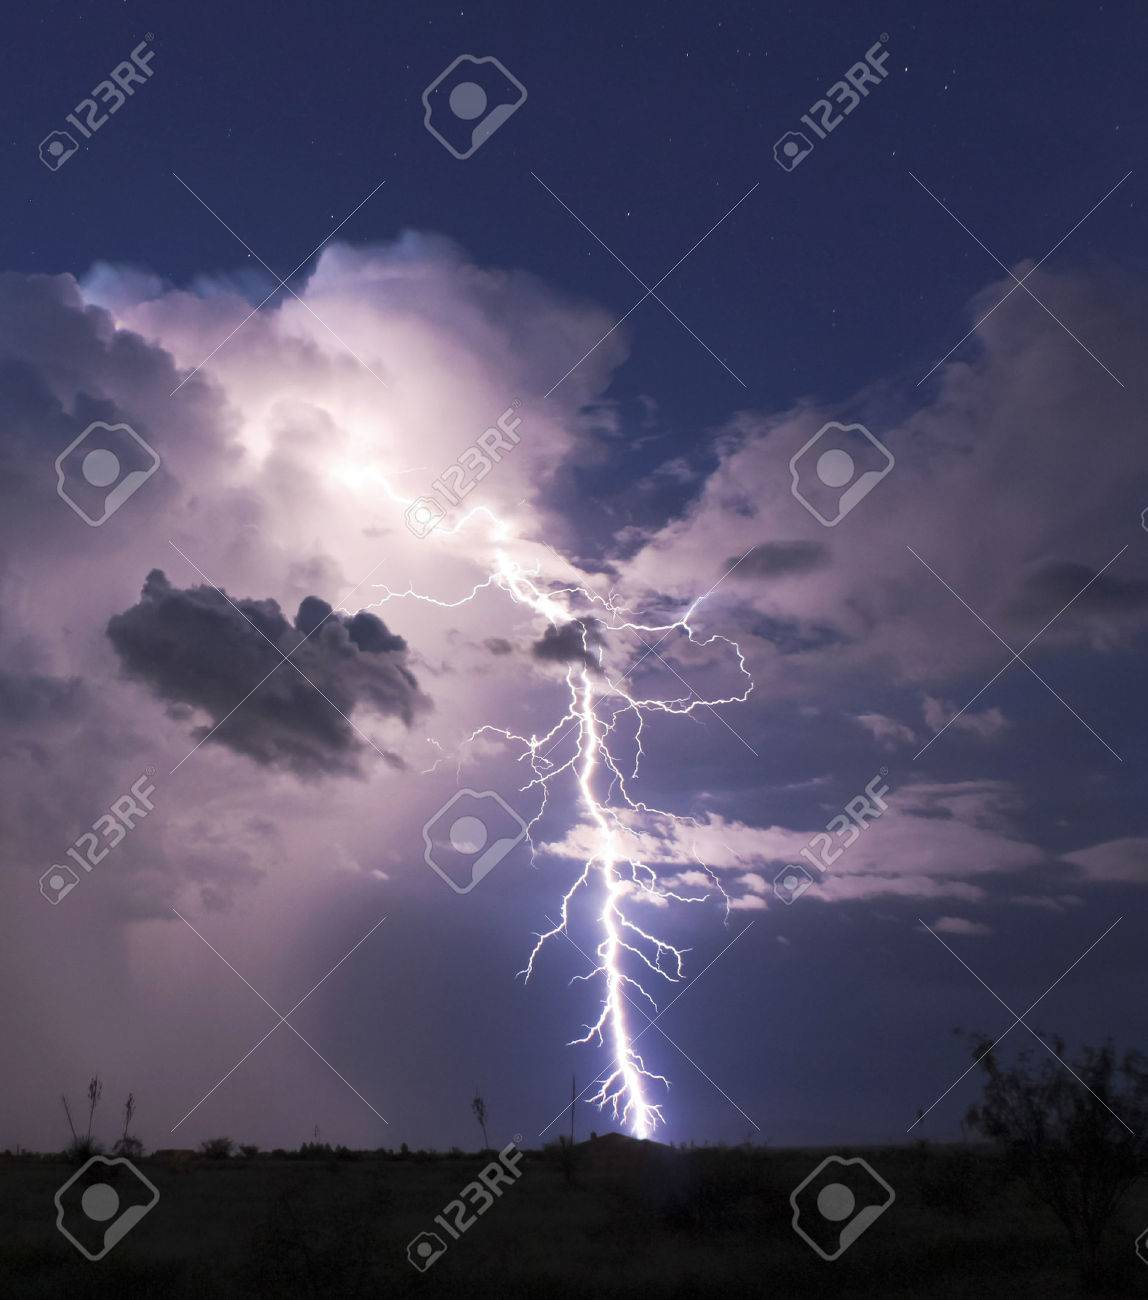 A Bolt of Lightning Strikes in a Stormy Desert Night and Seems to Hit a Housetop - 30825628